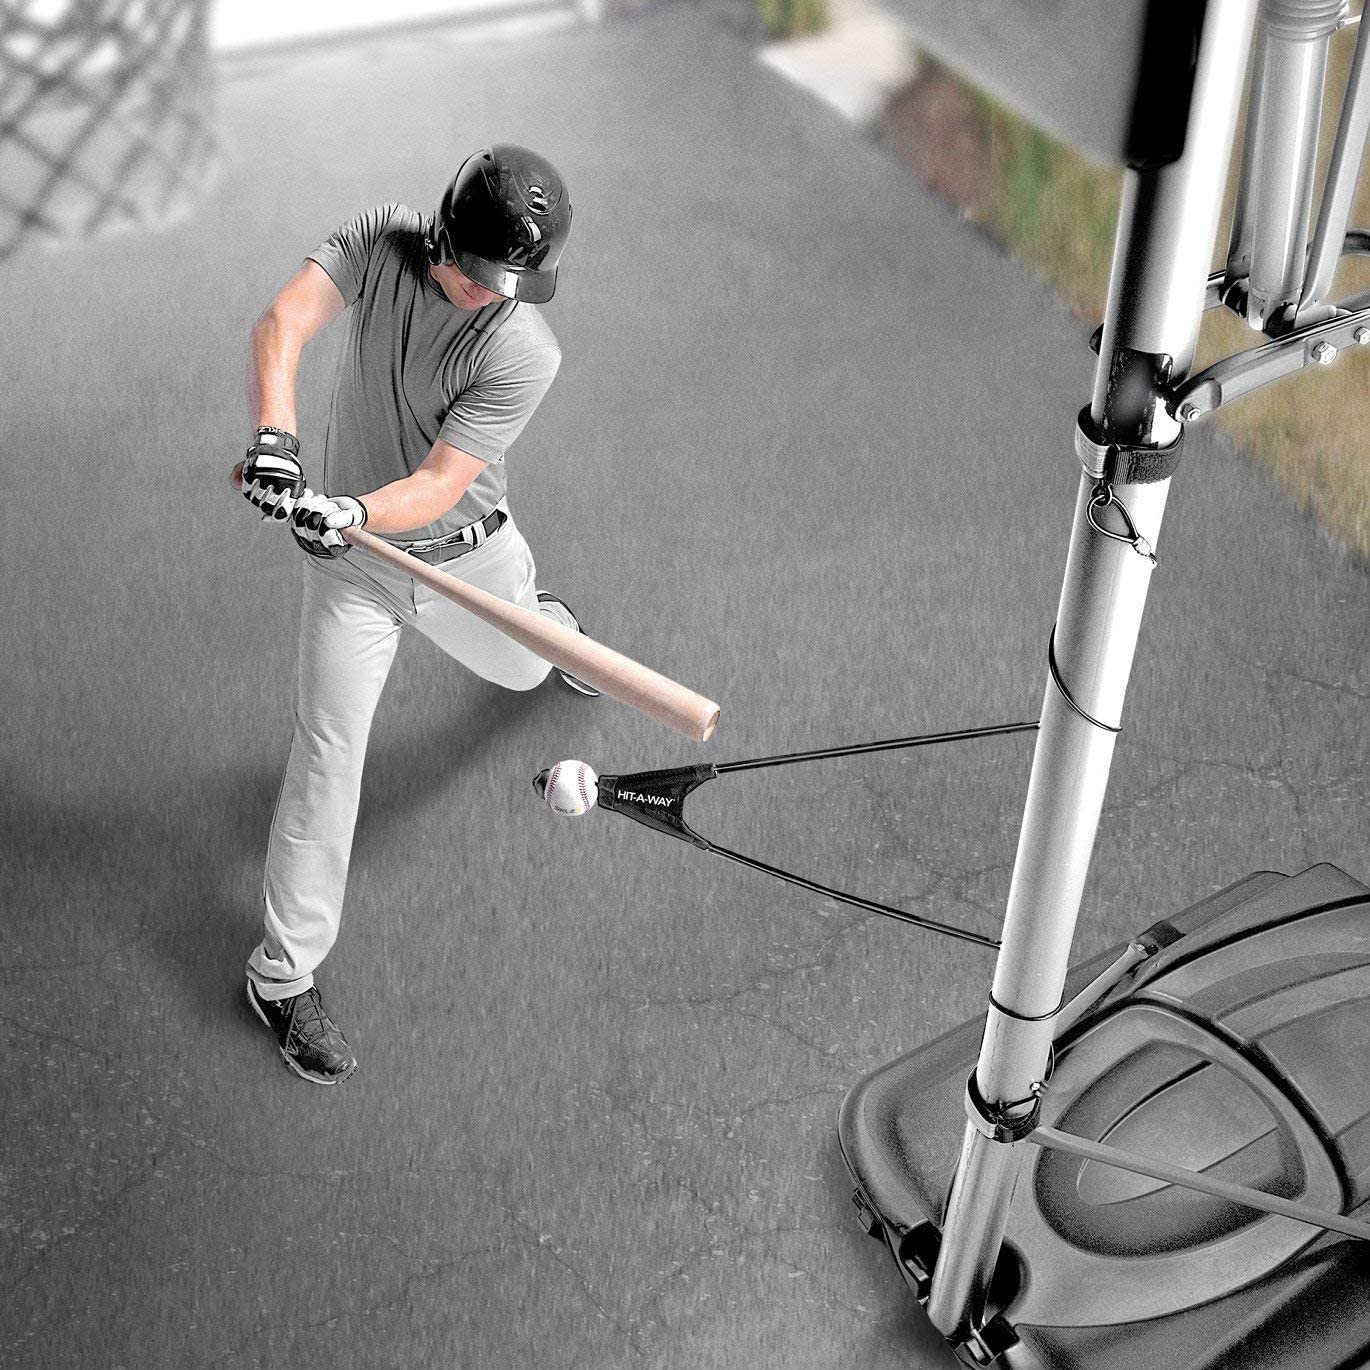 Improve Your Batting SKLZ Hit-A-Way Swing Trainer for Baseball and Softball